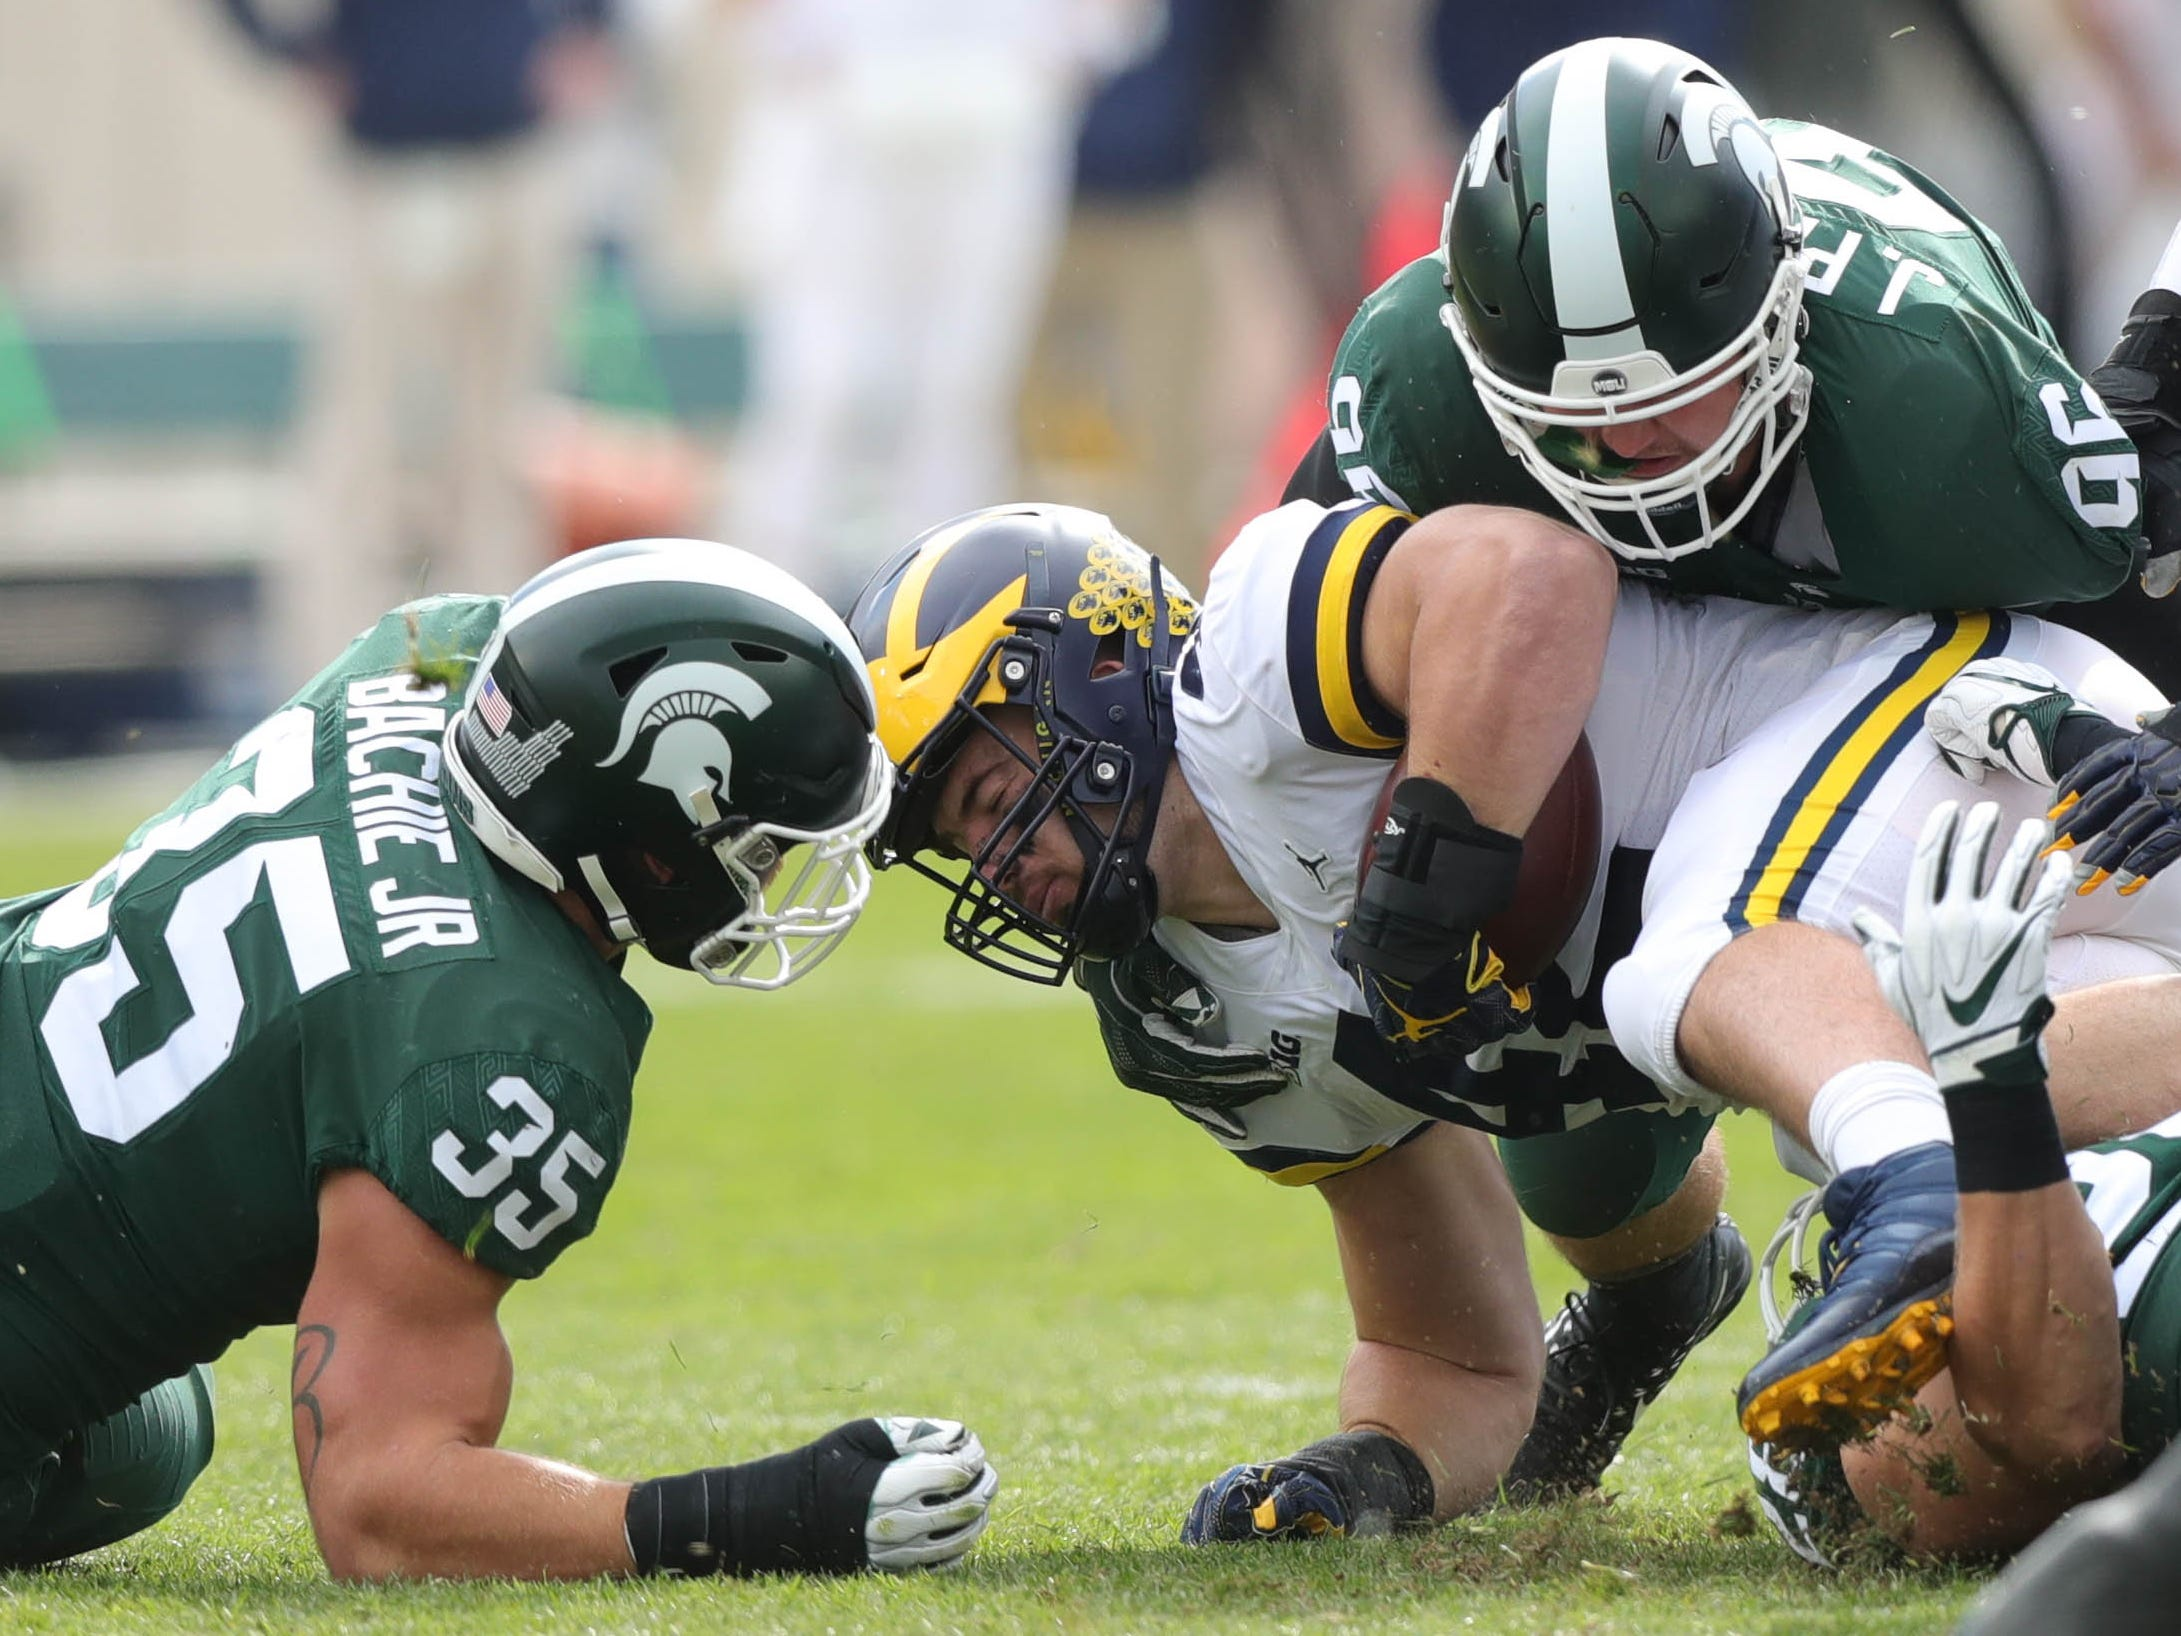 Michigan fullback Ben Mason is tackled by Michigan State's Jacub Panasiuk during the first half on Saturday, Oct. 20, 2018, at Spartan Stadium.